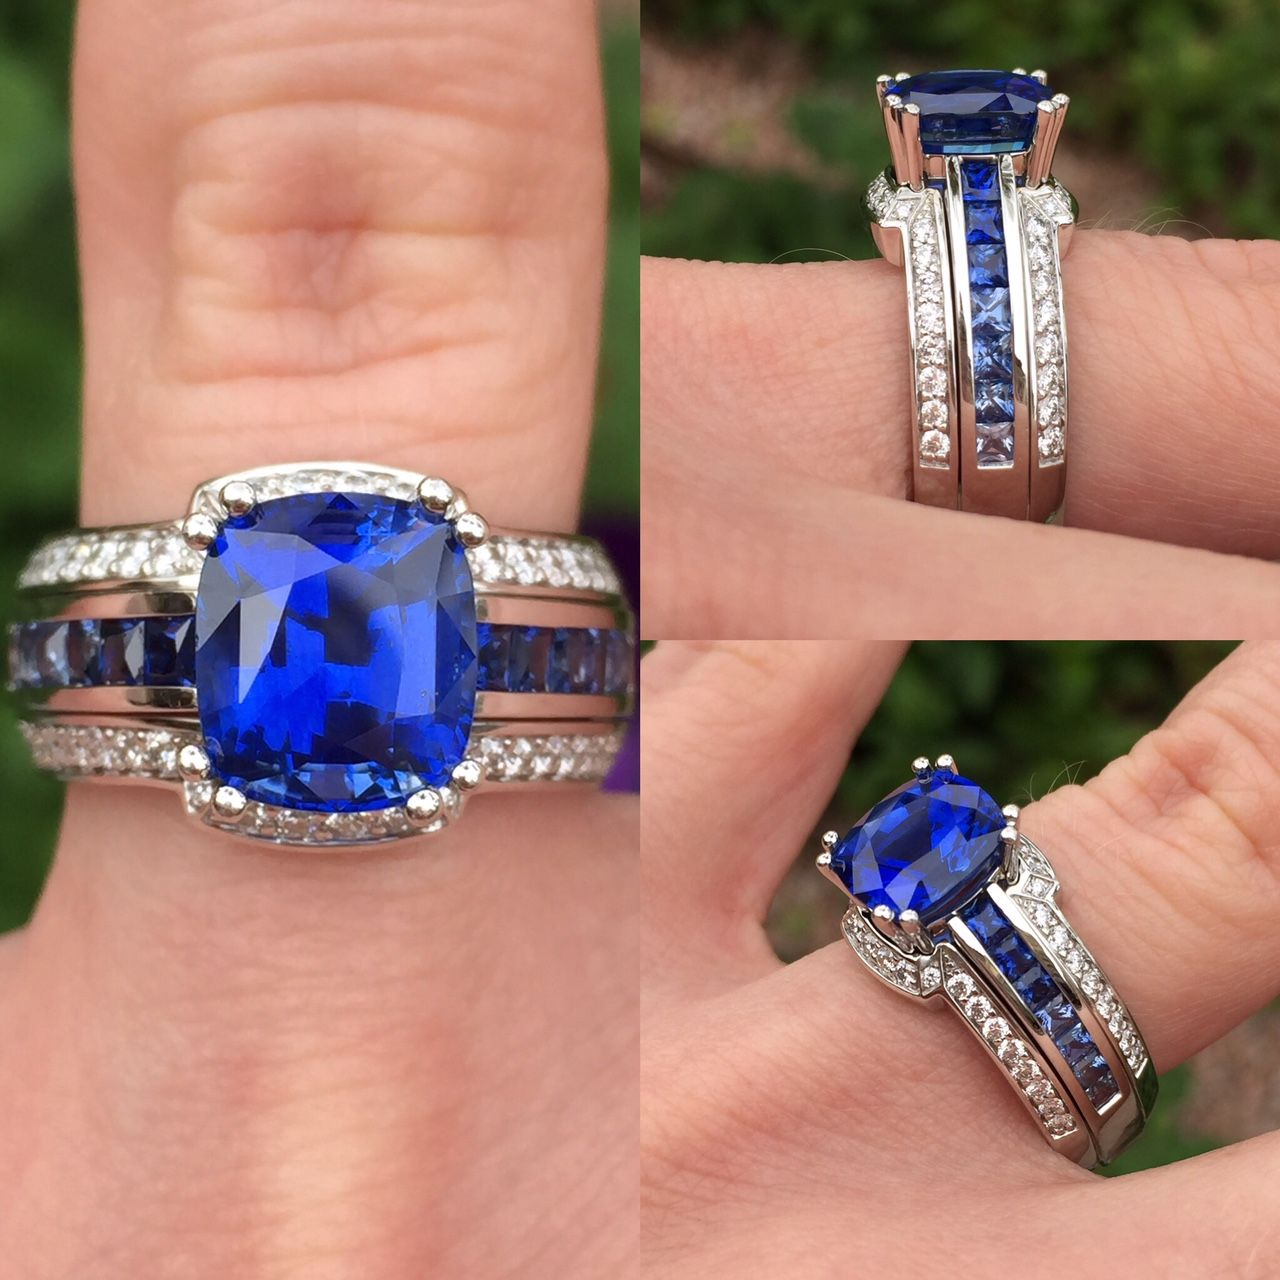 We can't say enough about this exquisite Sapphire ring!  The design and attention to detail are truly spectacular!  From the Paragon collection – Platinum - 3.81 carat cushion cut Blue Sapphire accented by princess cut Sapphires in a fade from dark to light blue and round brilliant cut Diamonds #coffinandtrout #jewelry #sapp